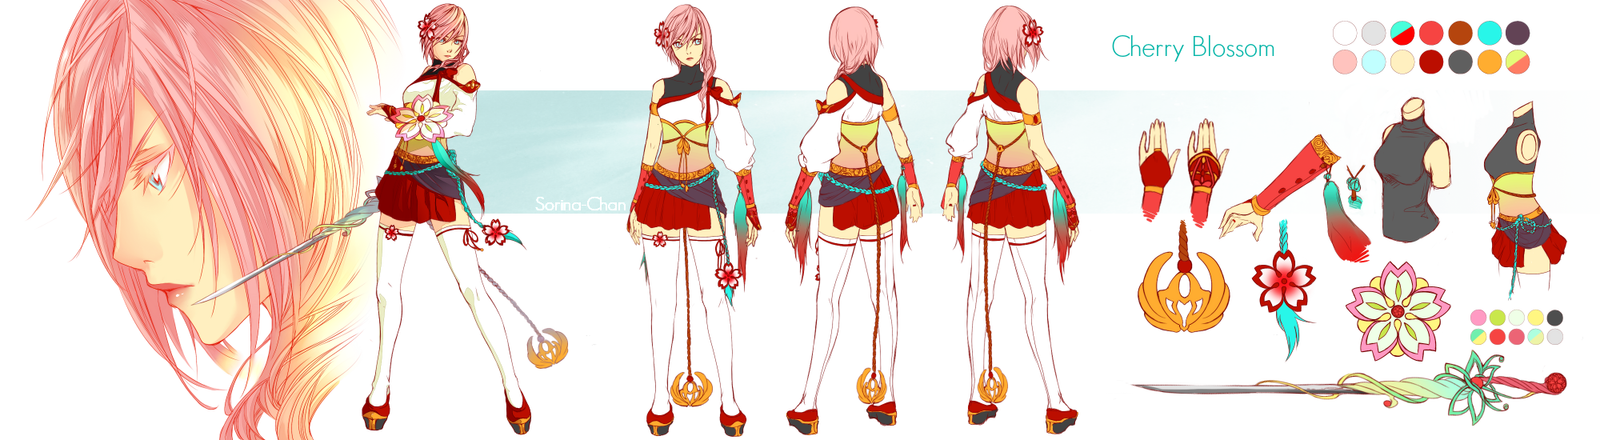 Lightning Returns - Cherry Blossom Design by Sorina-chan